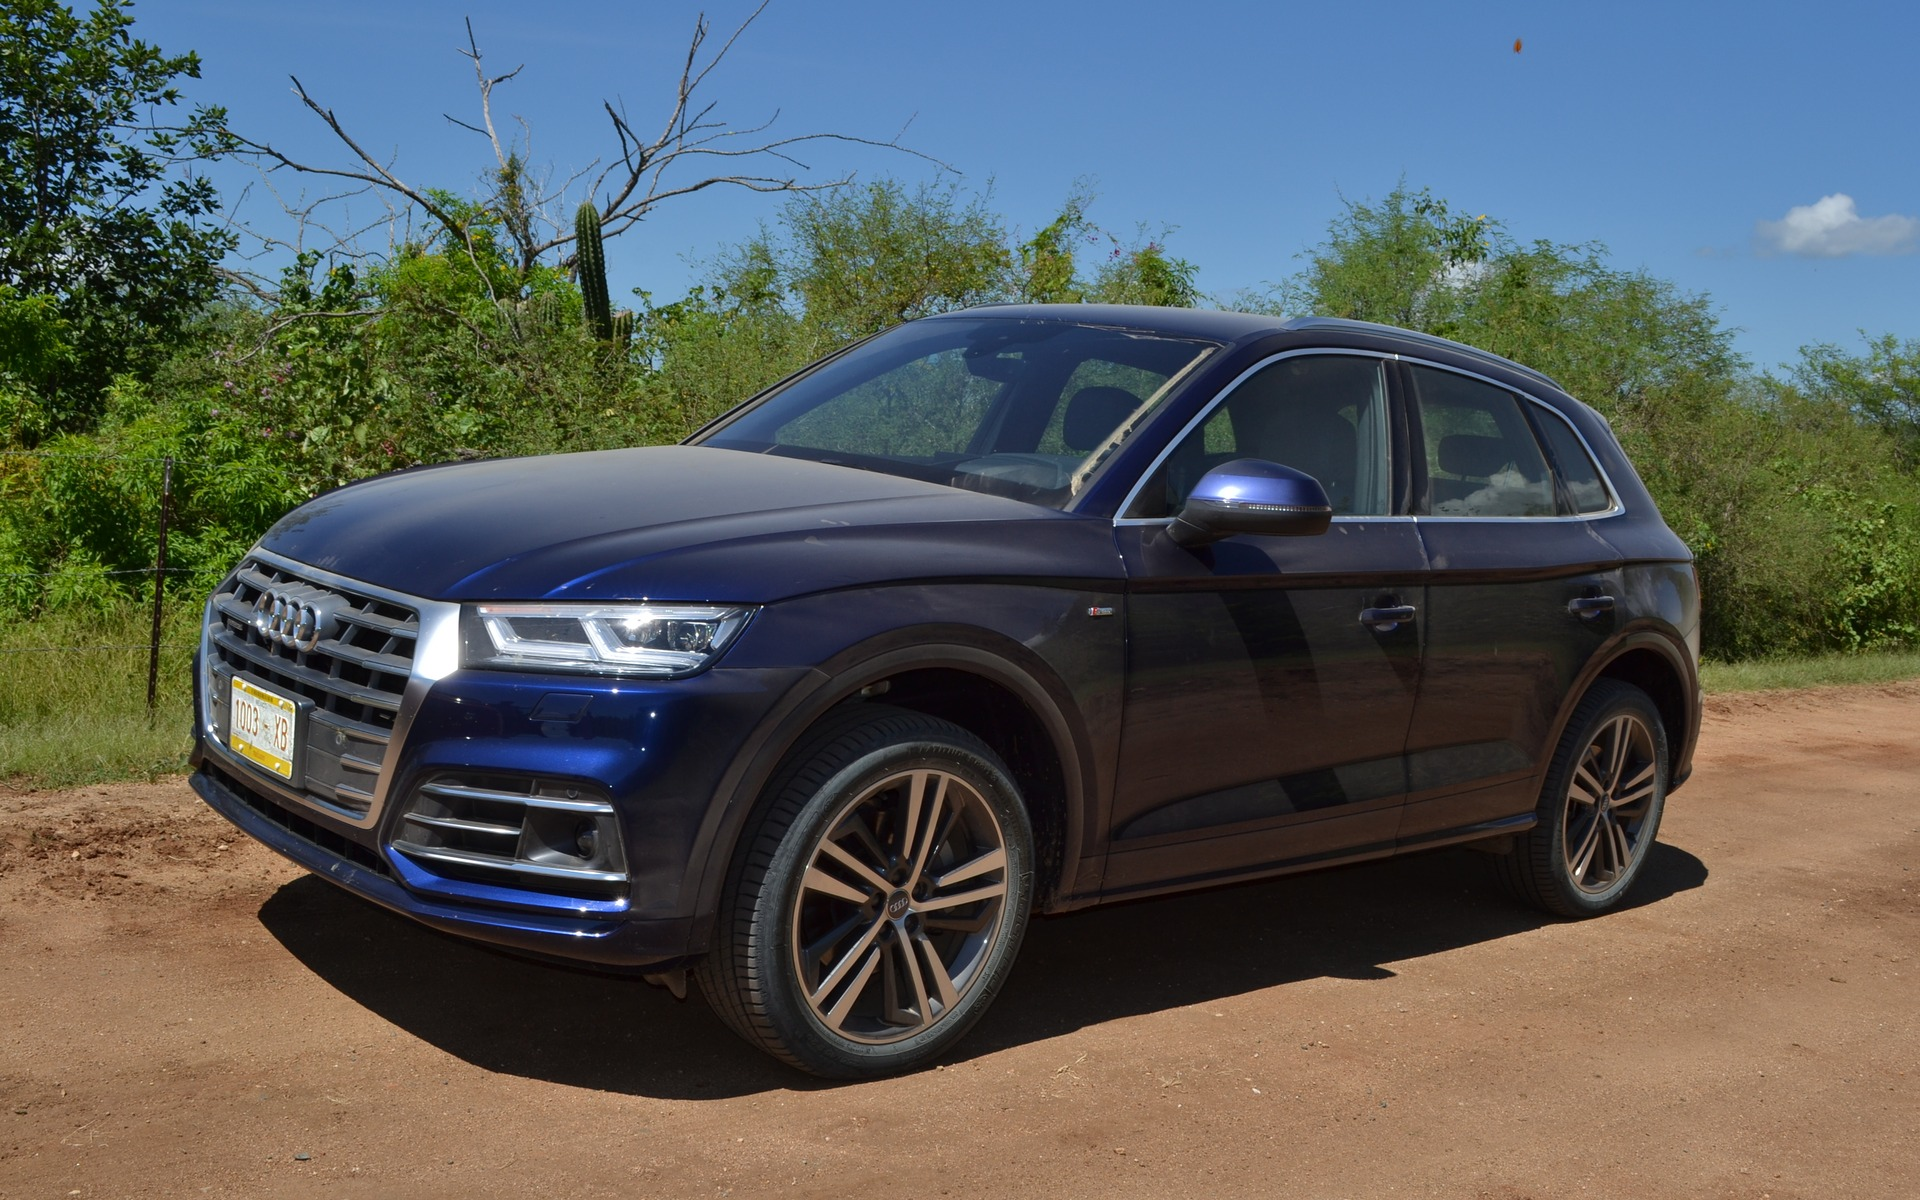 2018 Audi Q5 Driven And Tested 7 29